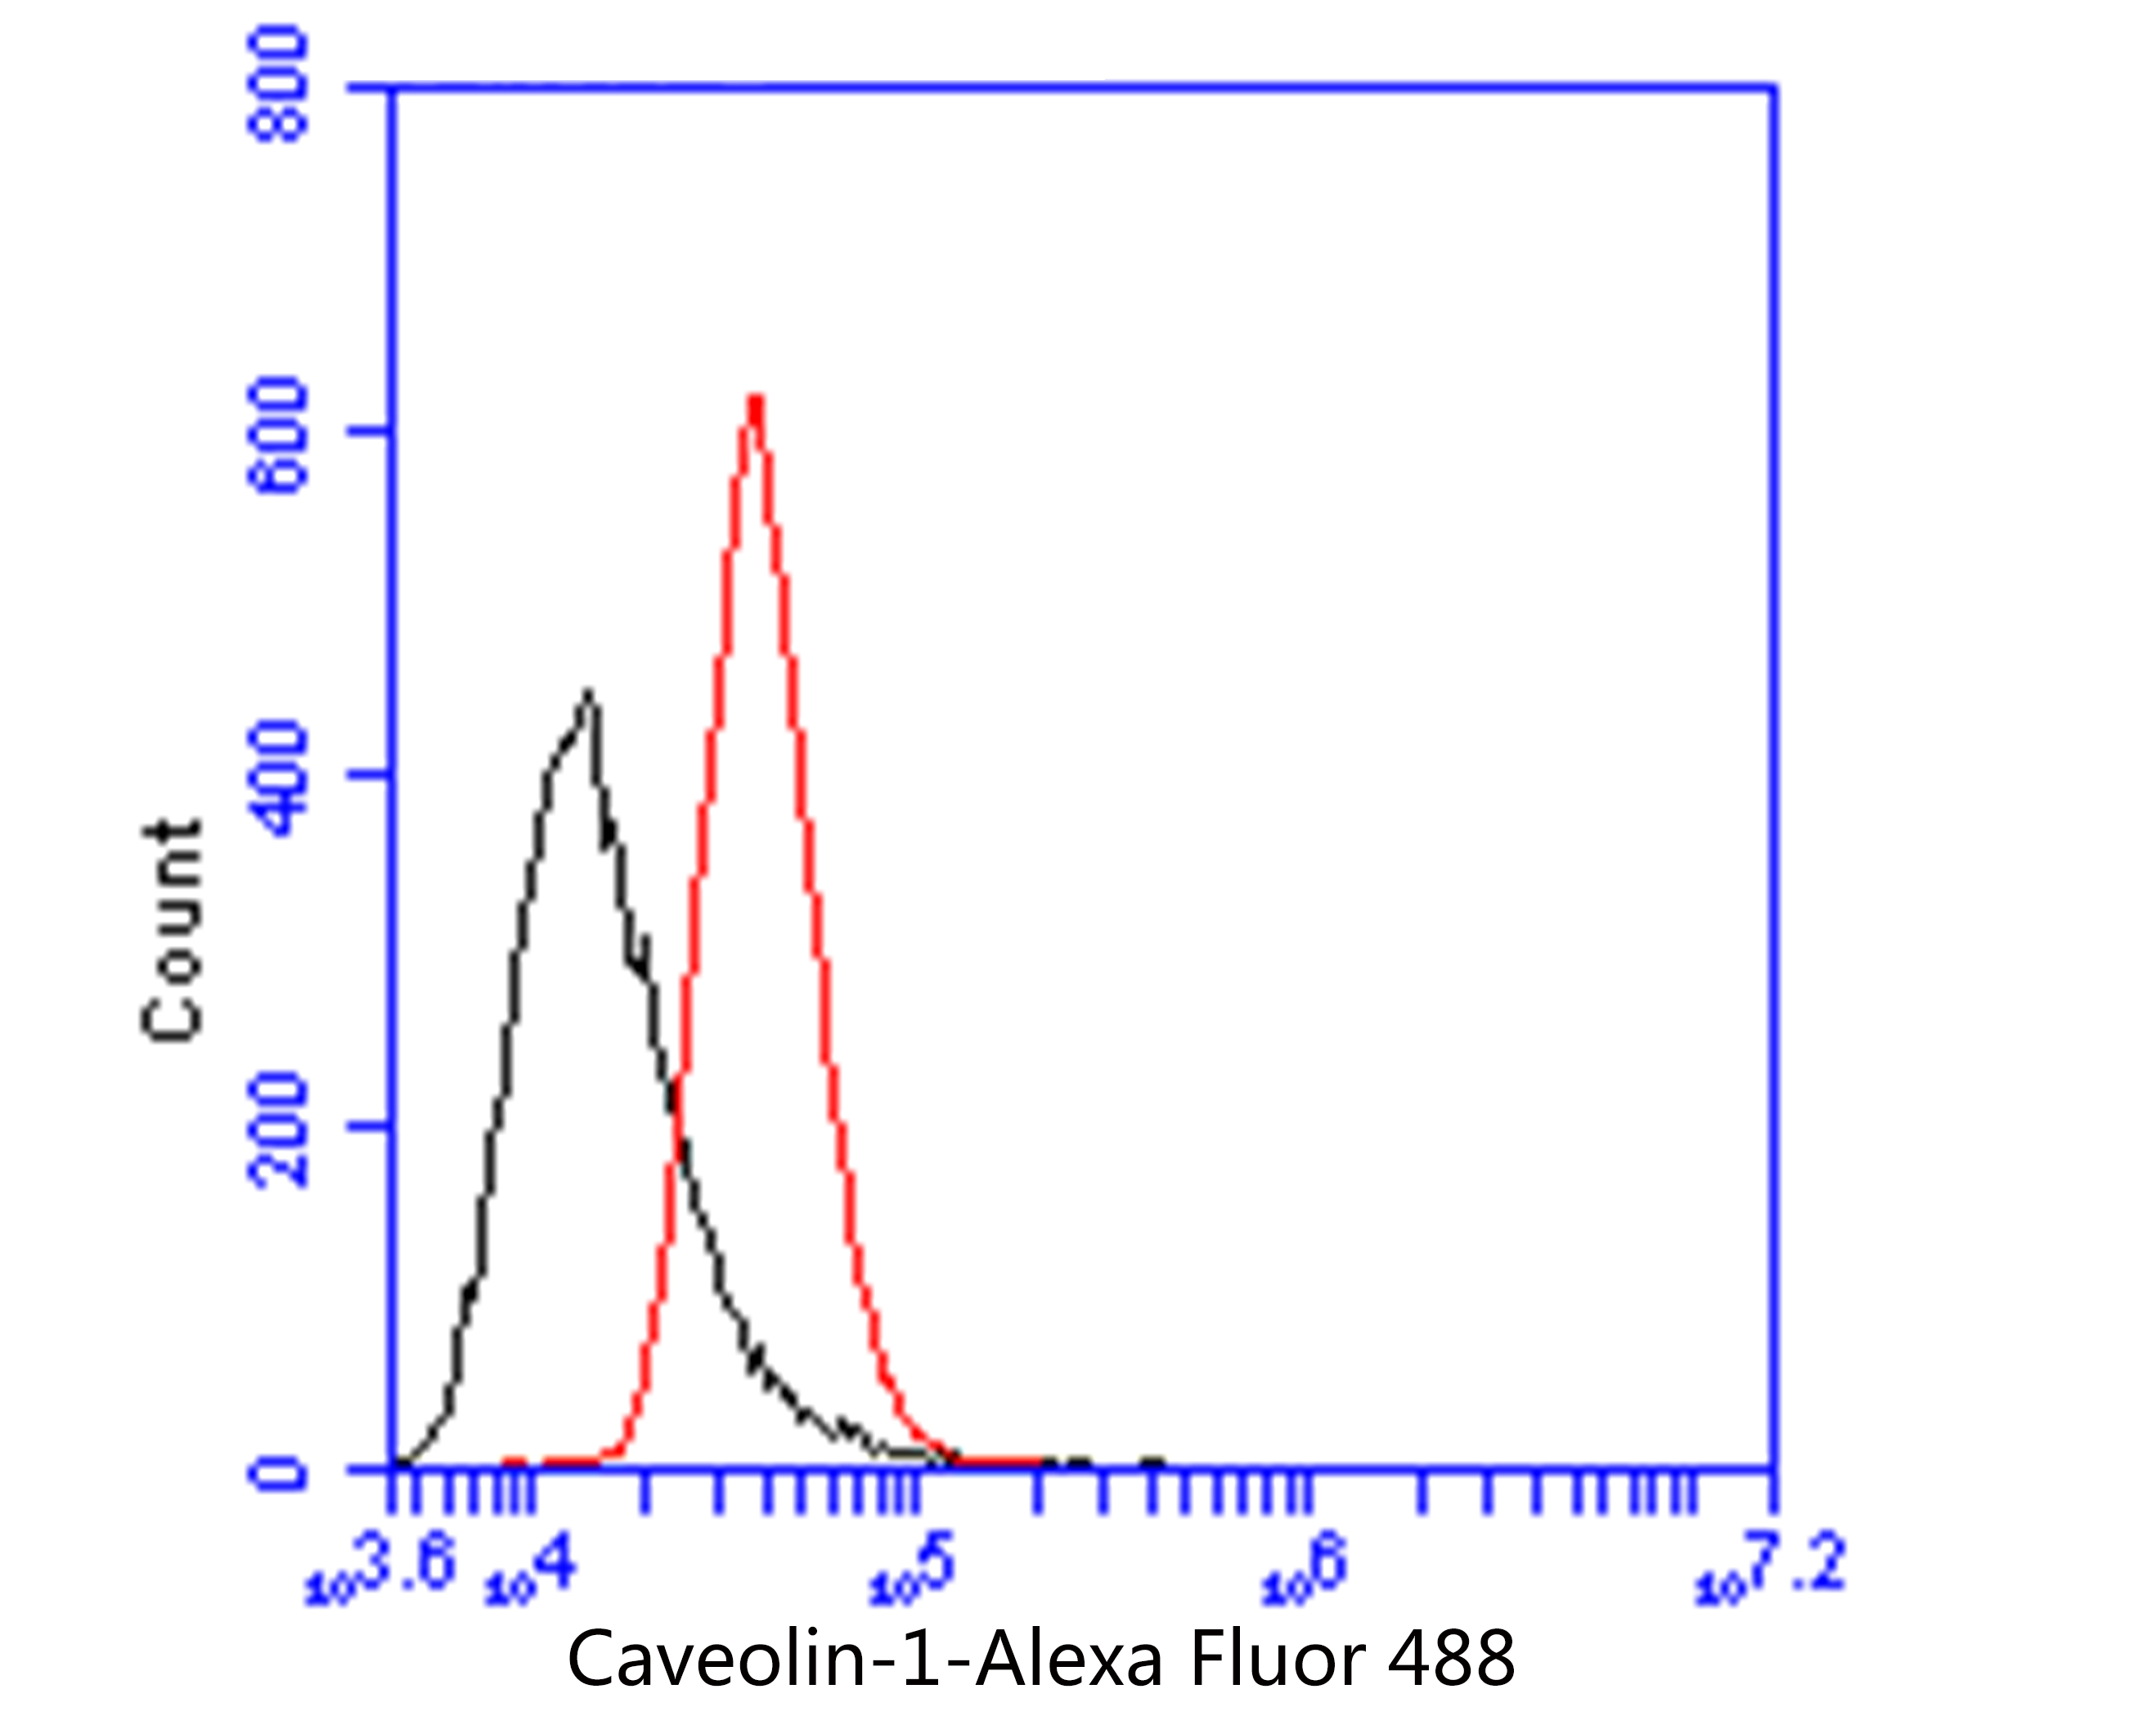 Flow cytometric analysis of Caveolin-1 was done on PANC-1 cells. The cells were fixed, permeabilized and stained with the primary antibody (EM1902-01, 1/50) (red). After incubation of the primary antibody at room temperature for an hour, the cells were stained with a Alexa Fluor 488-conjugated Goat anti-Mouse IgG Secondary antibody at 1/1000 dilution for 30 minutes.Unlabelled sample was used as a control (cells without incubation with primary antibody; black).